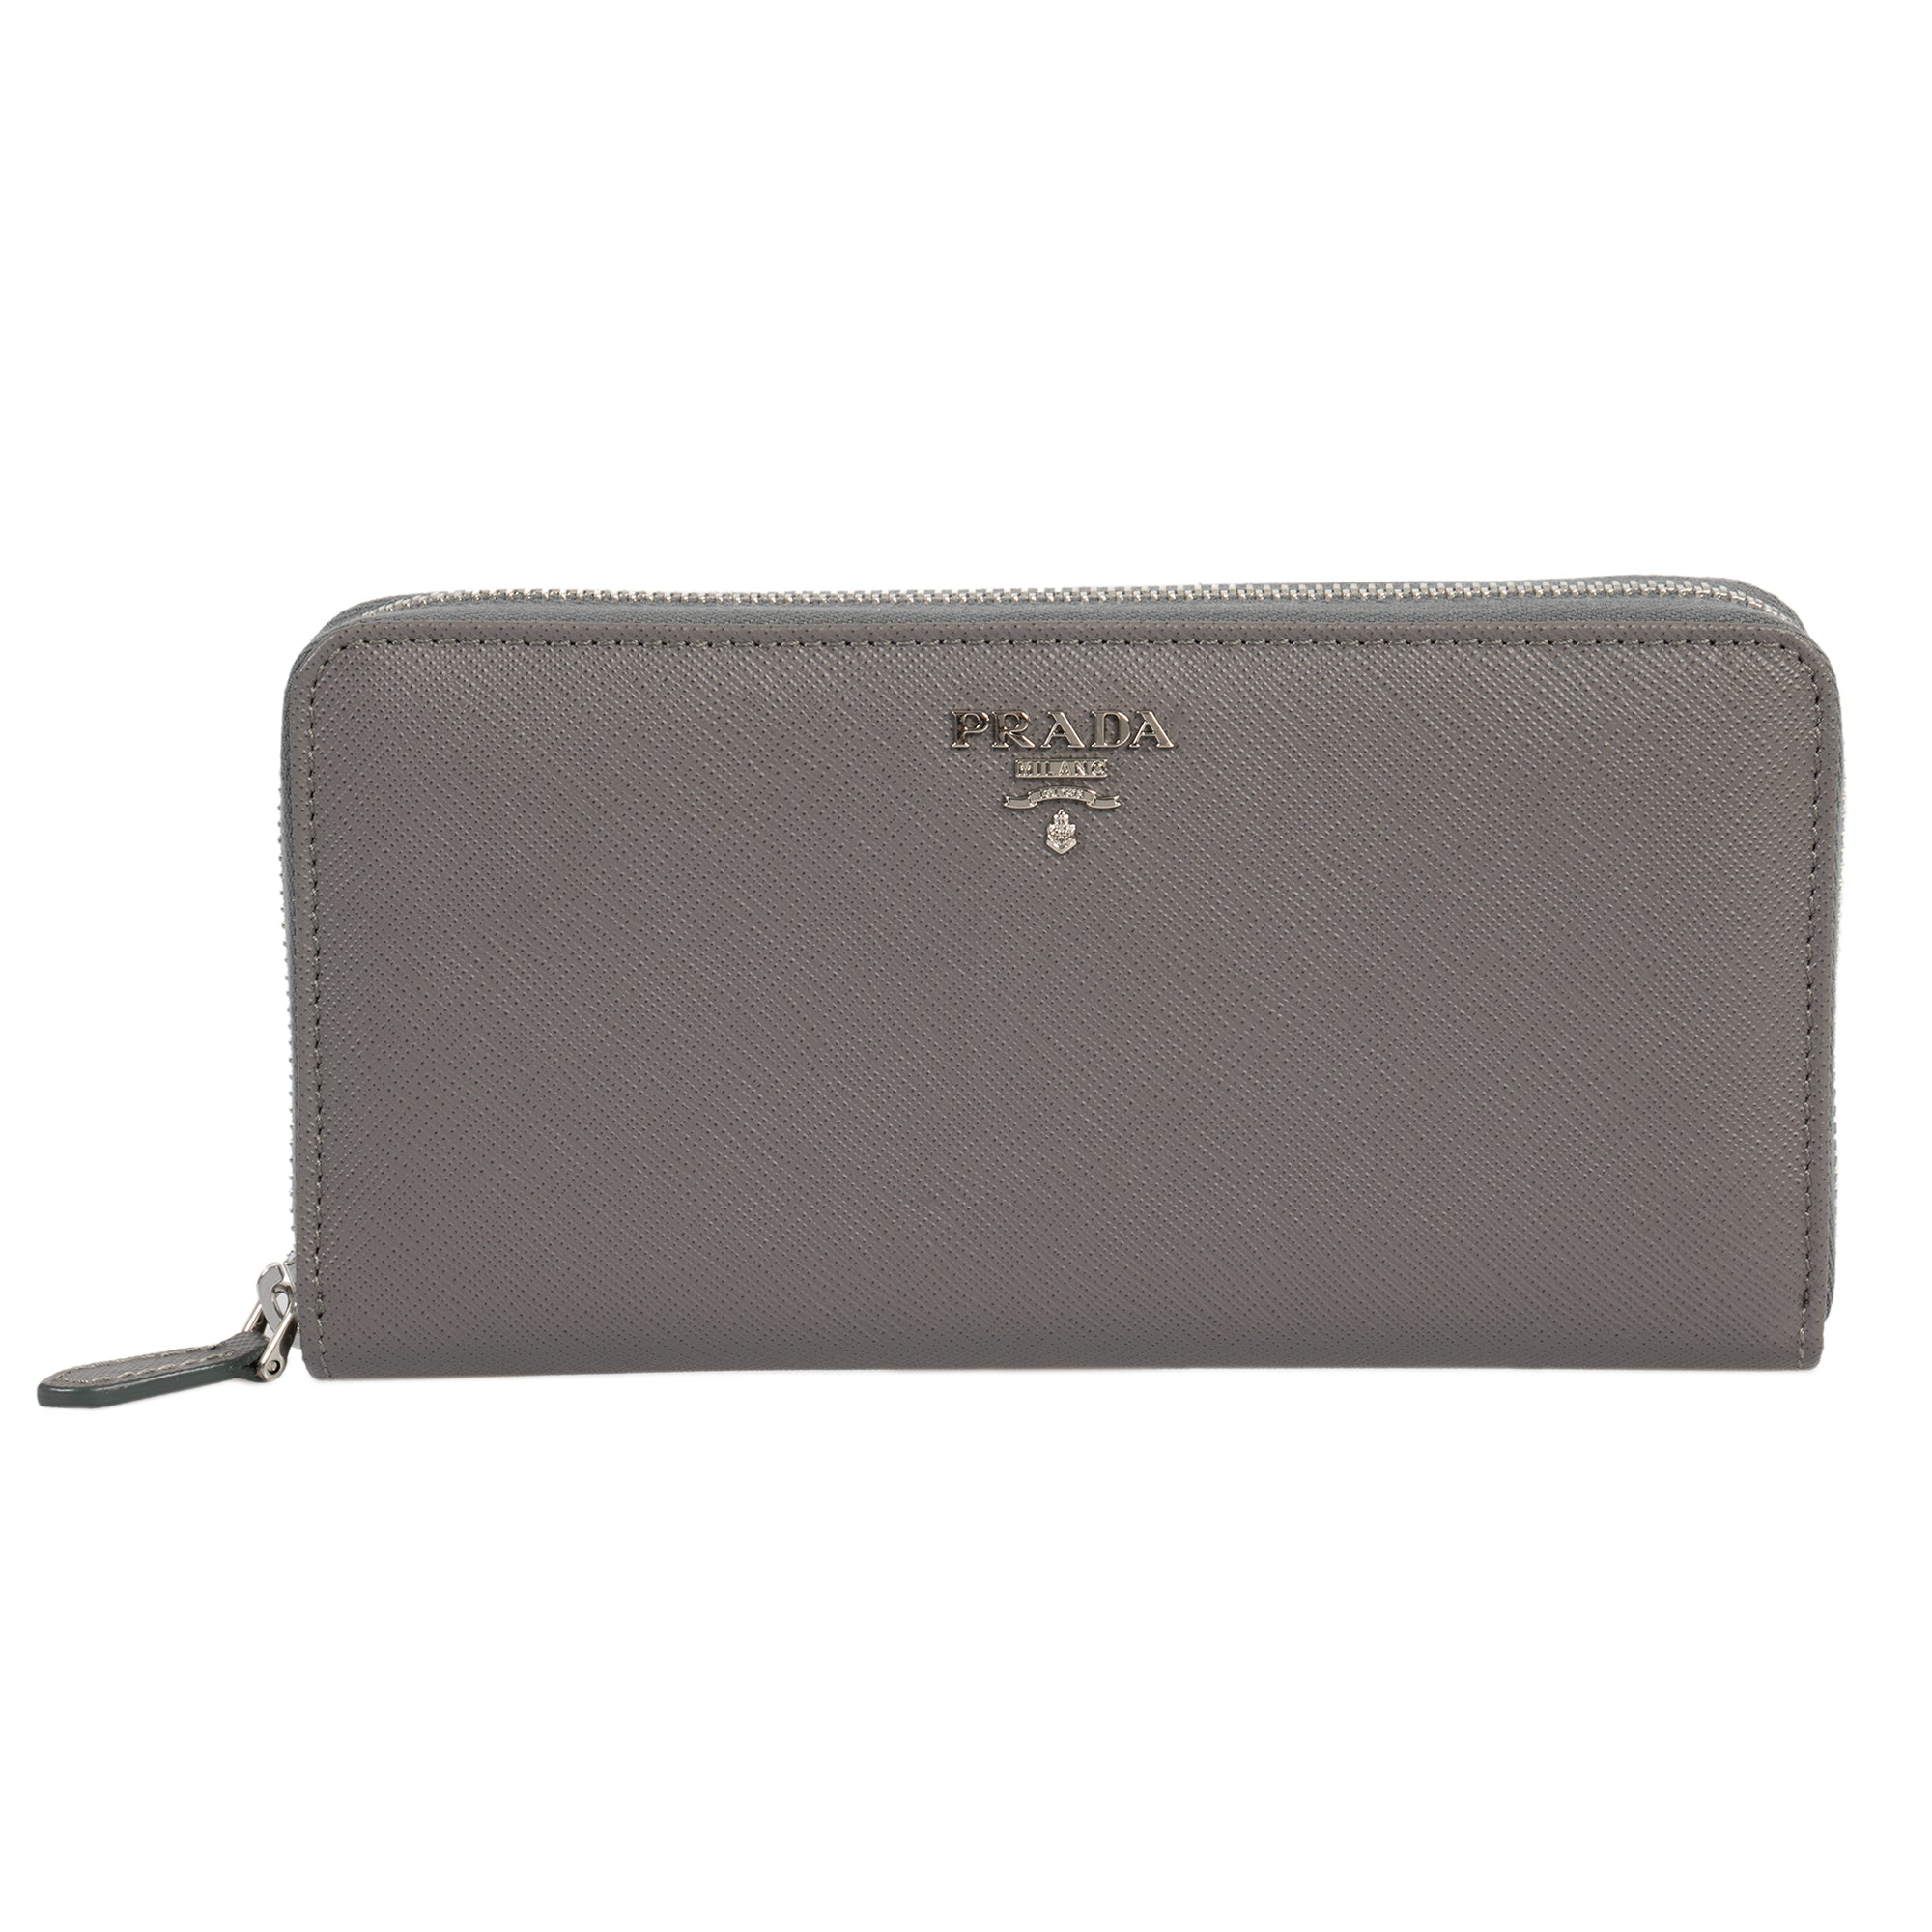 Prada Marble Saffiano Leather Zip-Up Wallet 1ML506 QWA F0K44